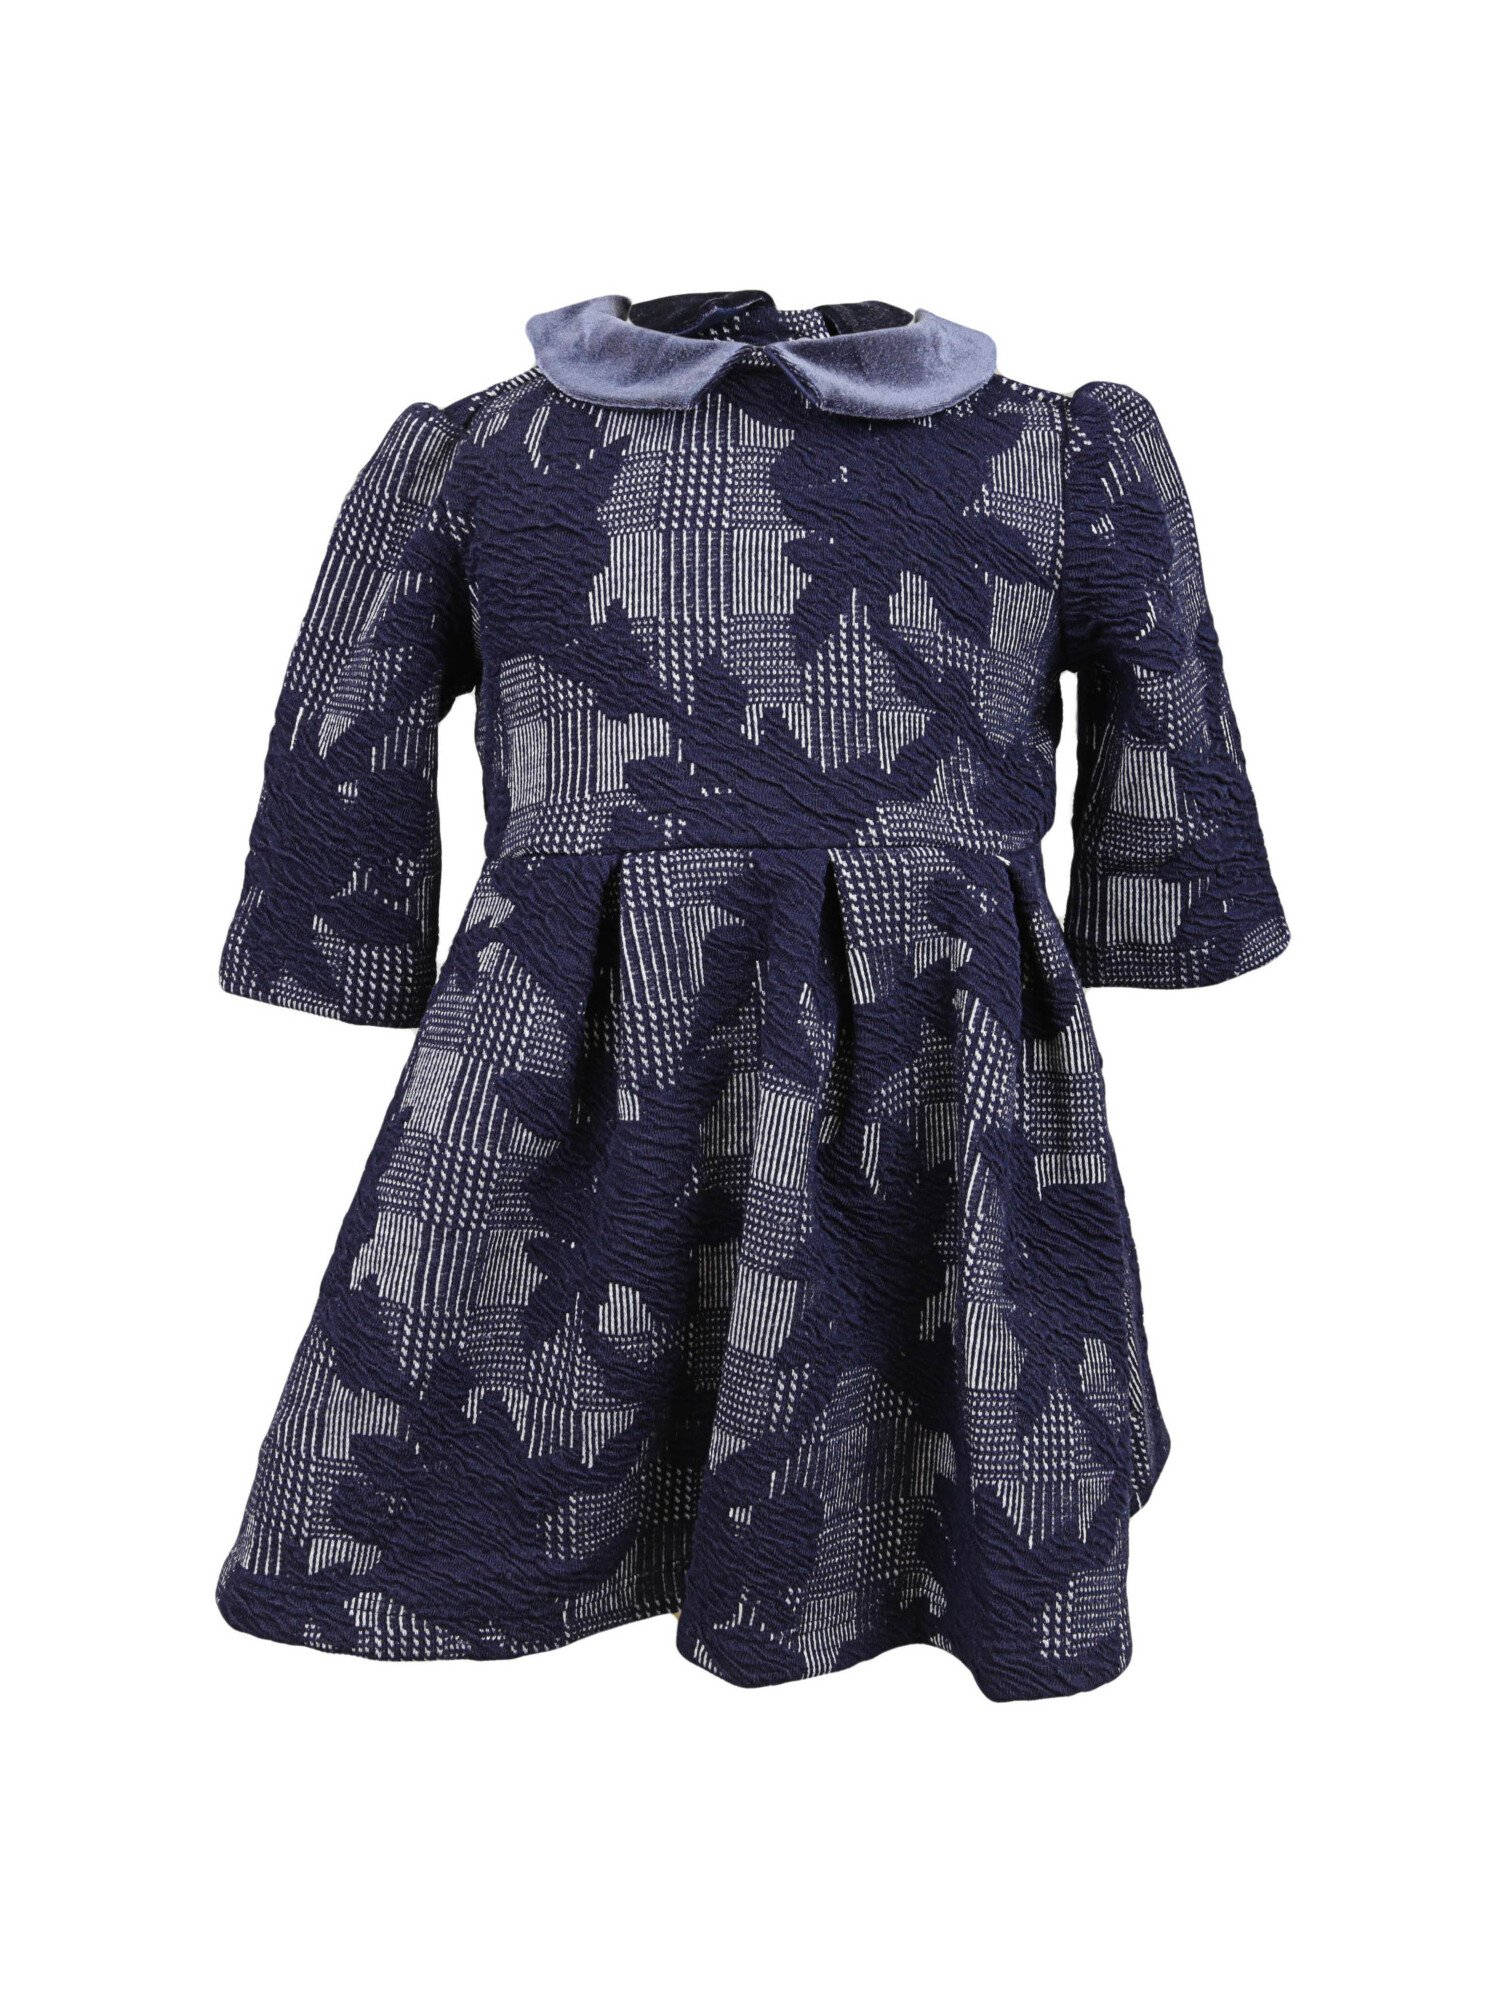 Details about  /Janie And Jack Girl/'s Floral Jacquard Dress Special Occasion